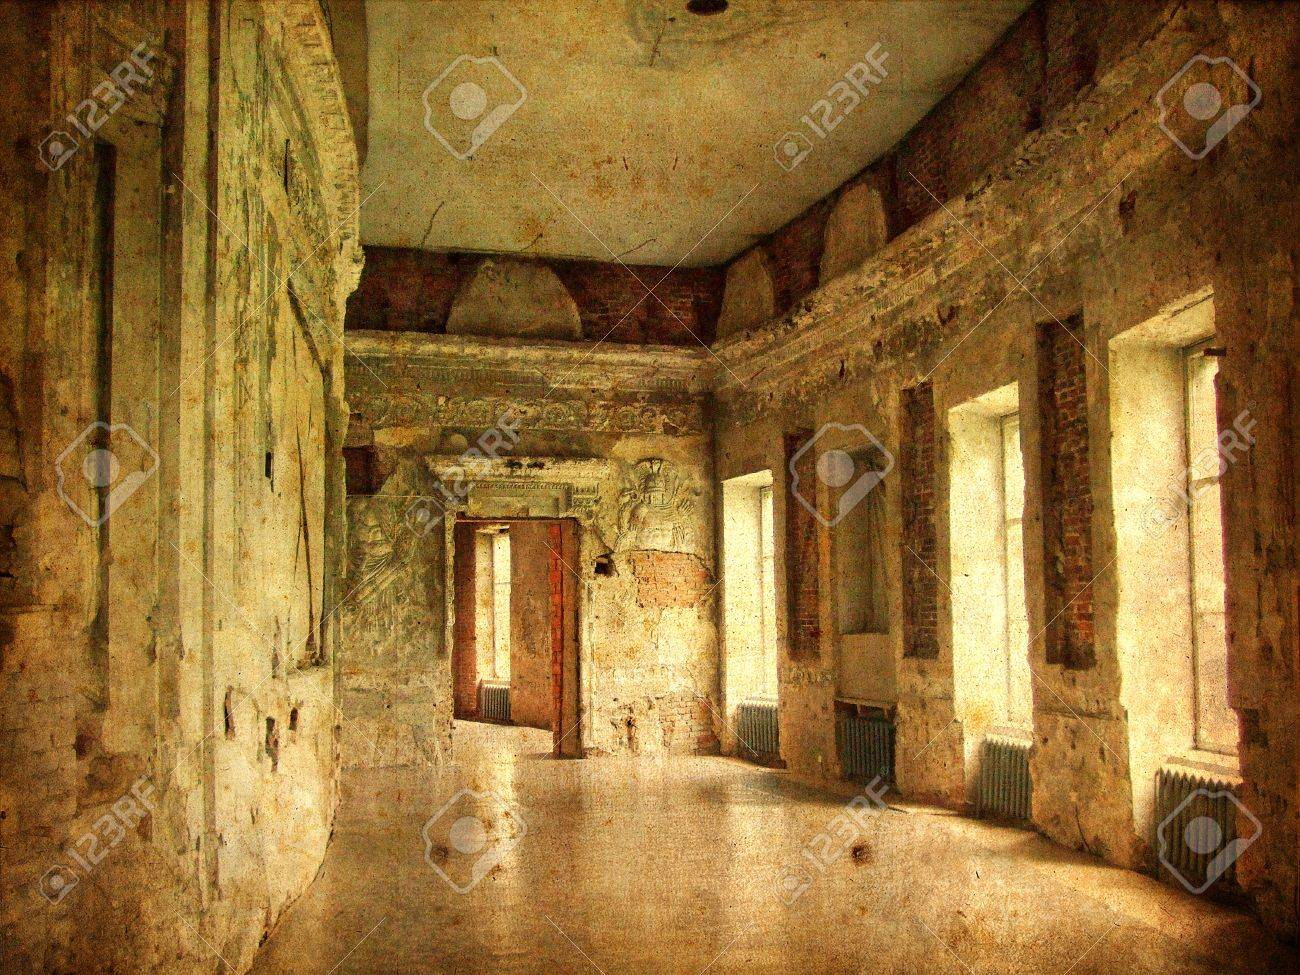 interior of an old palace ruines of a castle stock photo, picture